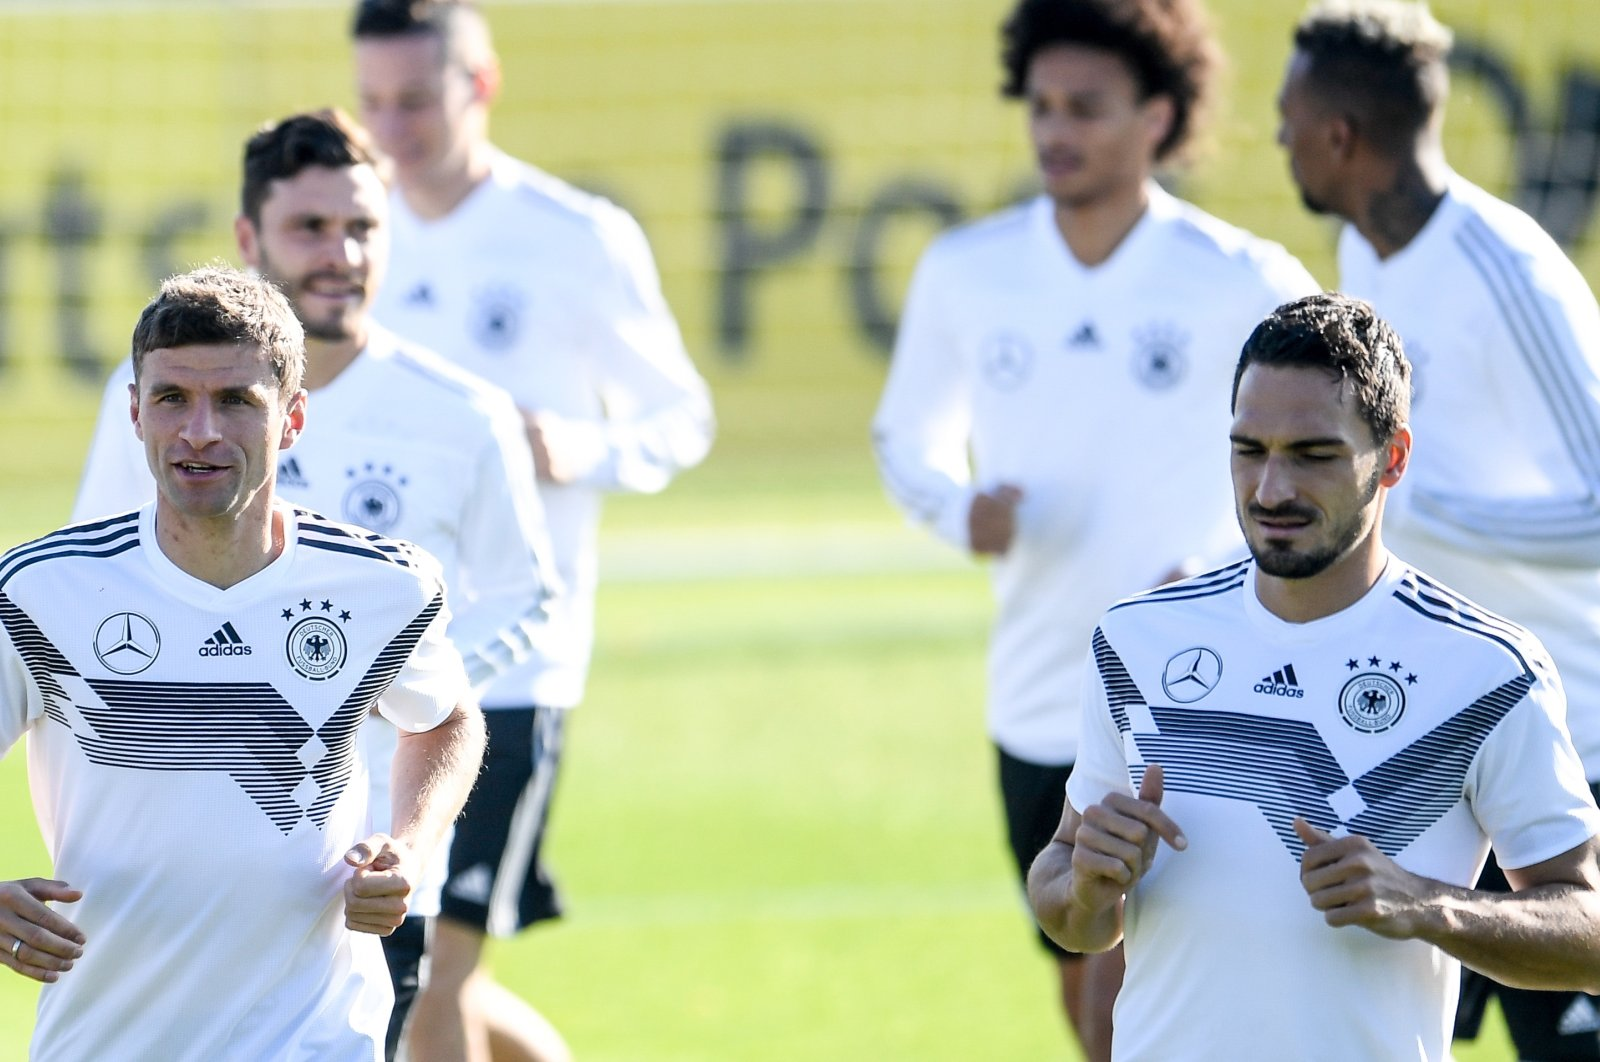 German national footballers Thomas Muller (L) and Mats Hummels attend a training session in Berlin, Germany, Oct. 11, 2018. (EPA Photo)